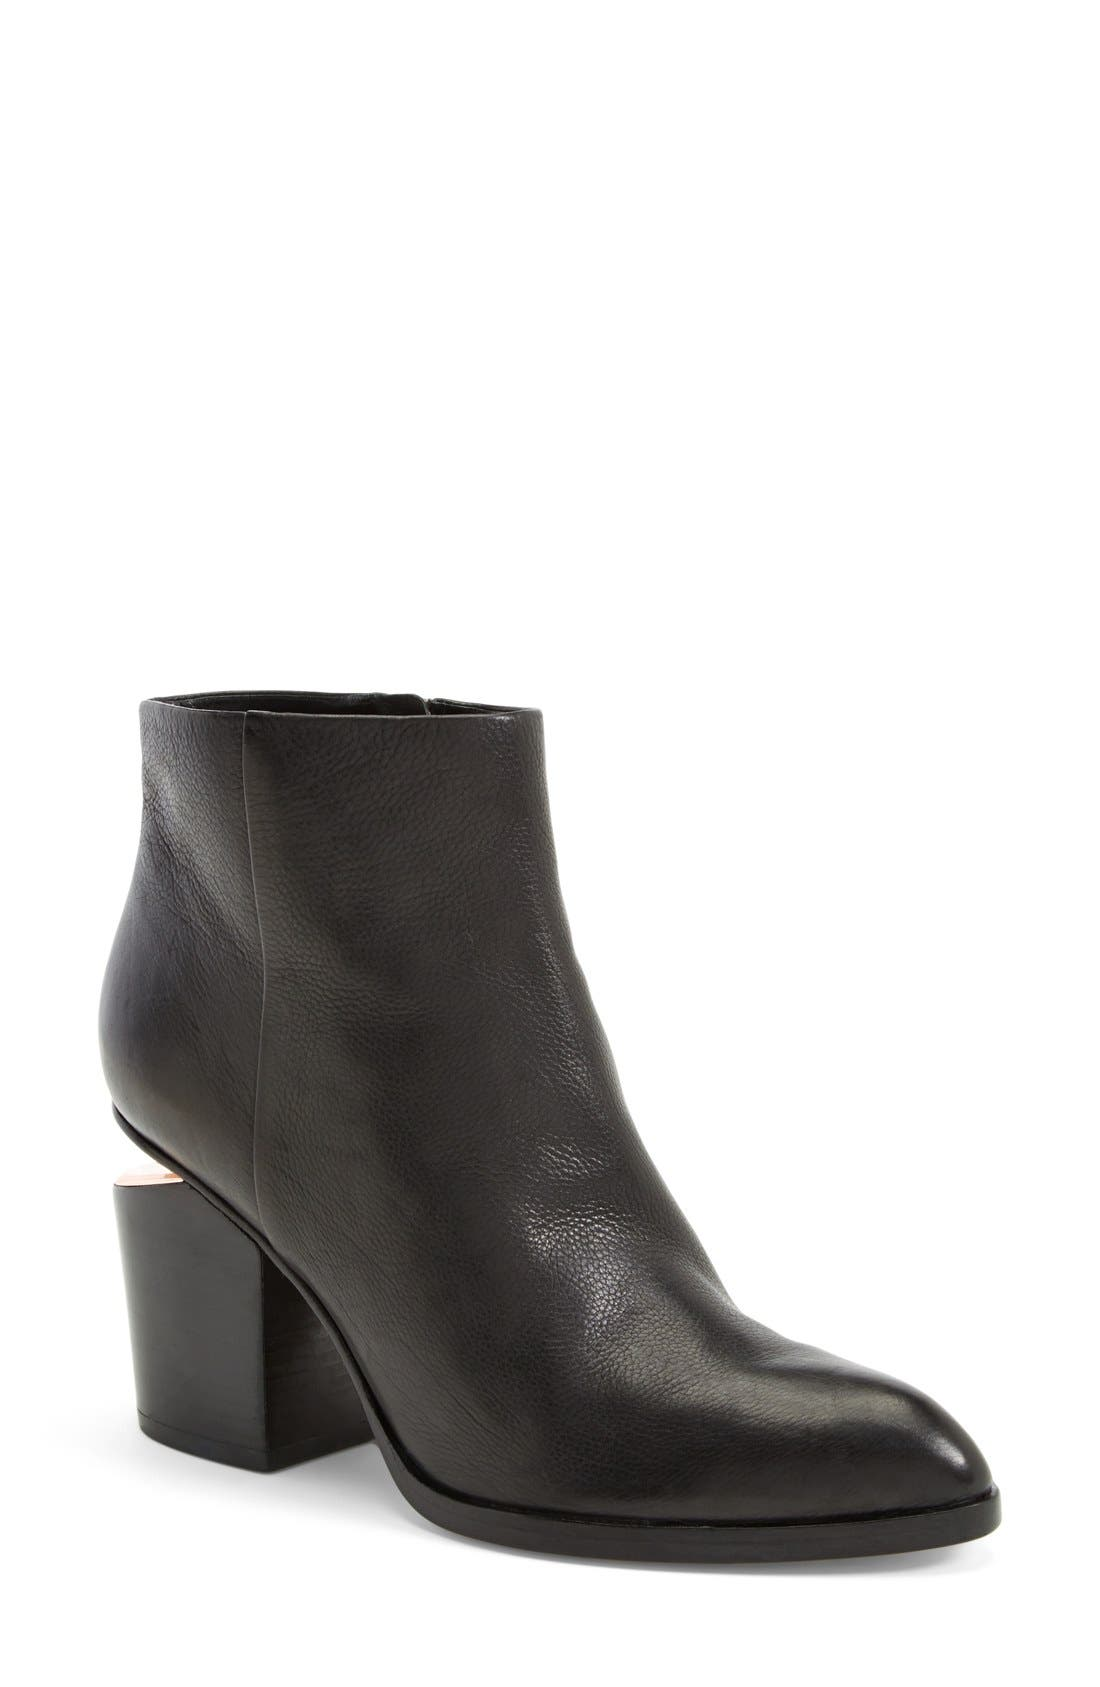 Gabi Bootie,                         Main,                         color, BLACK LEATHER